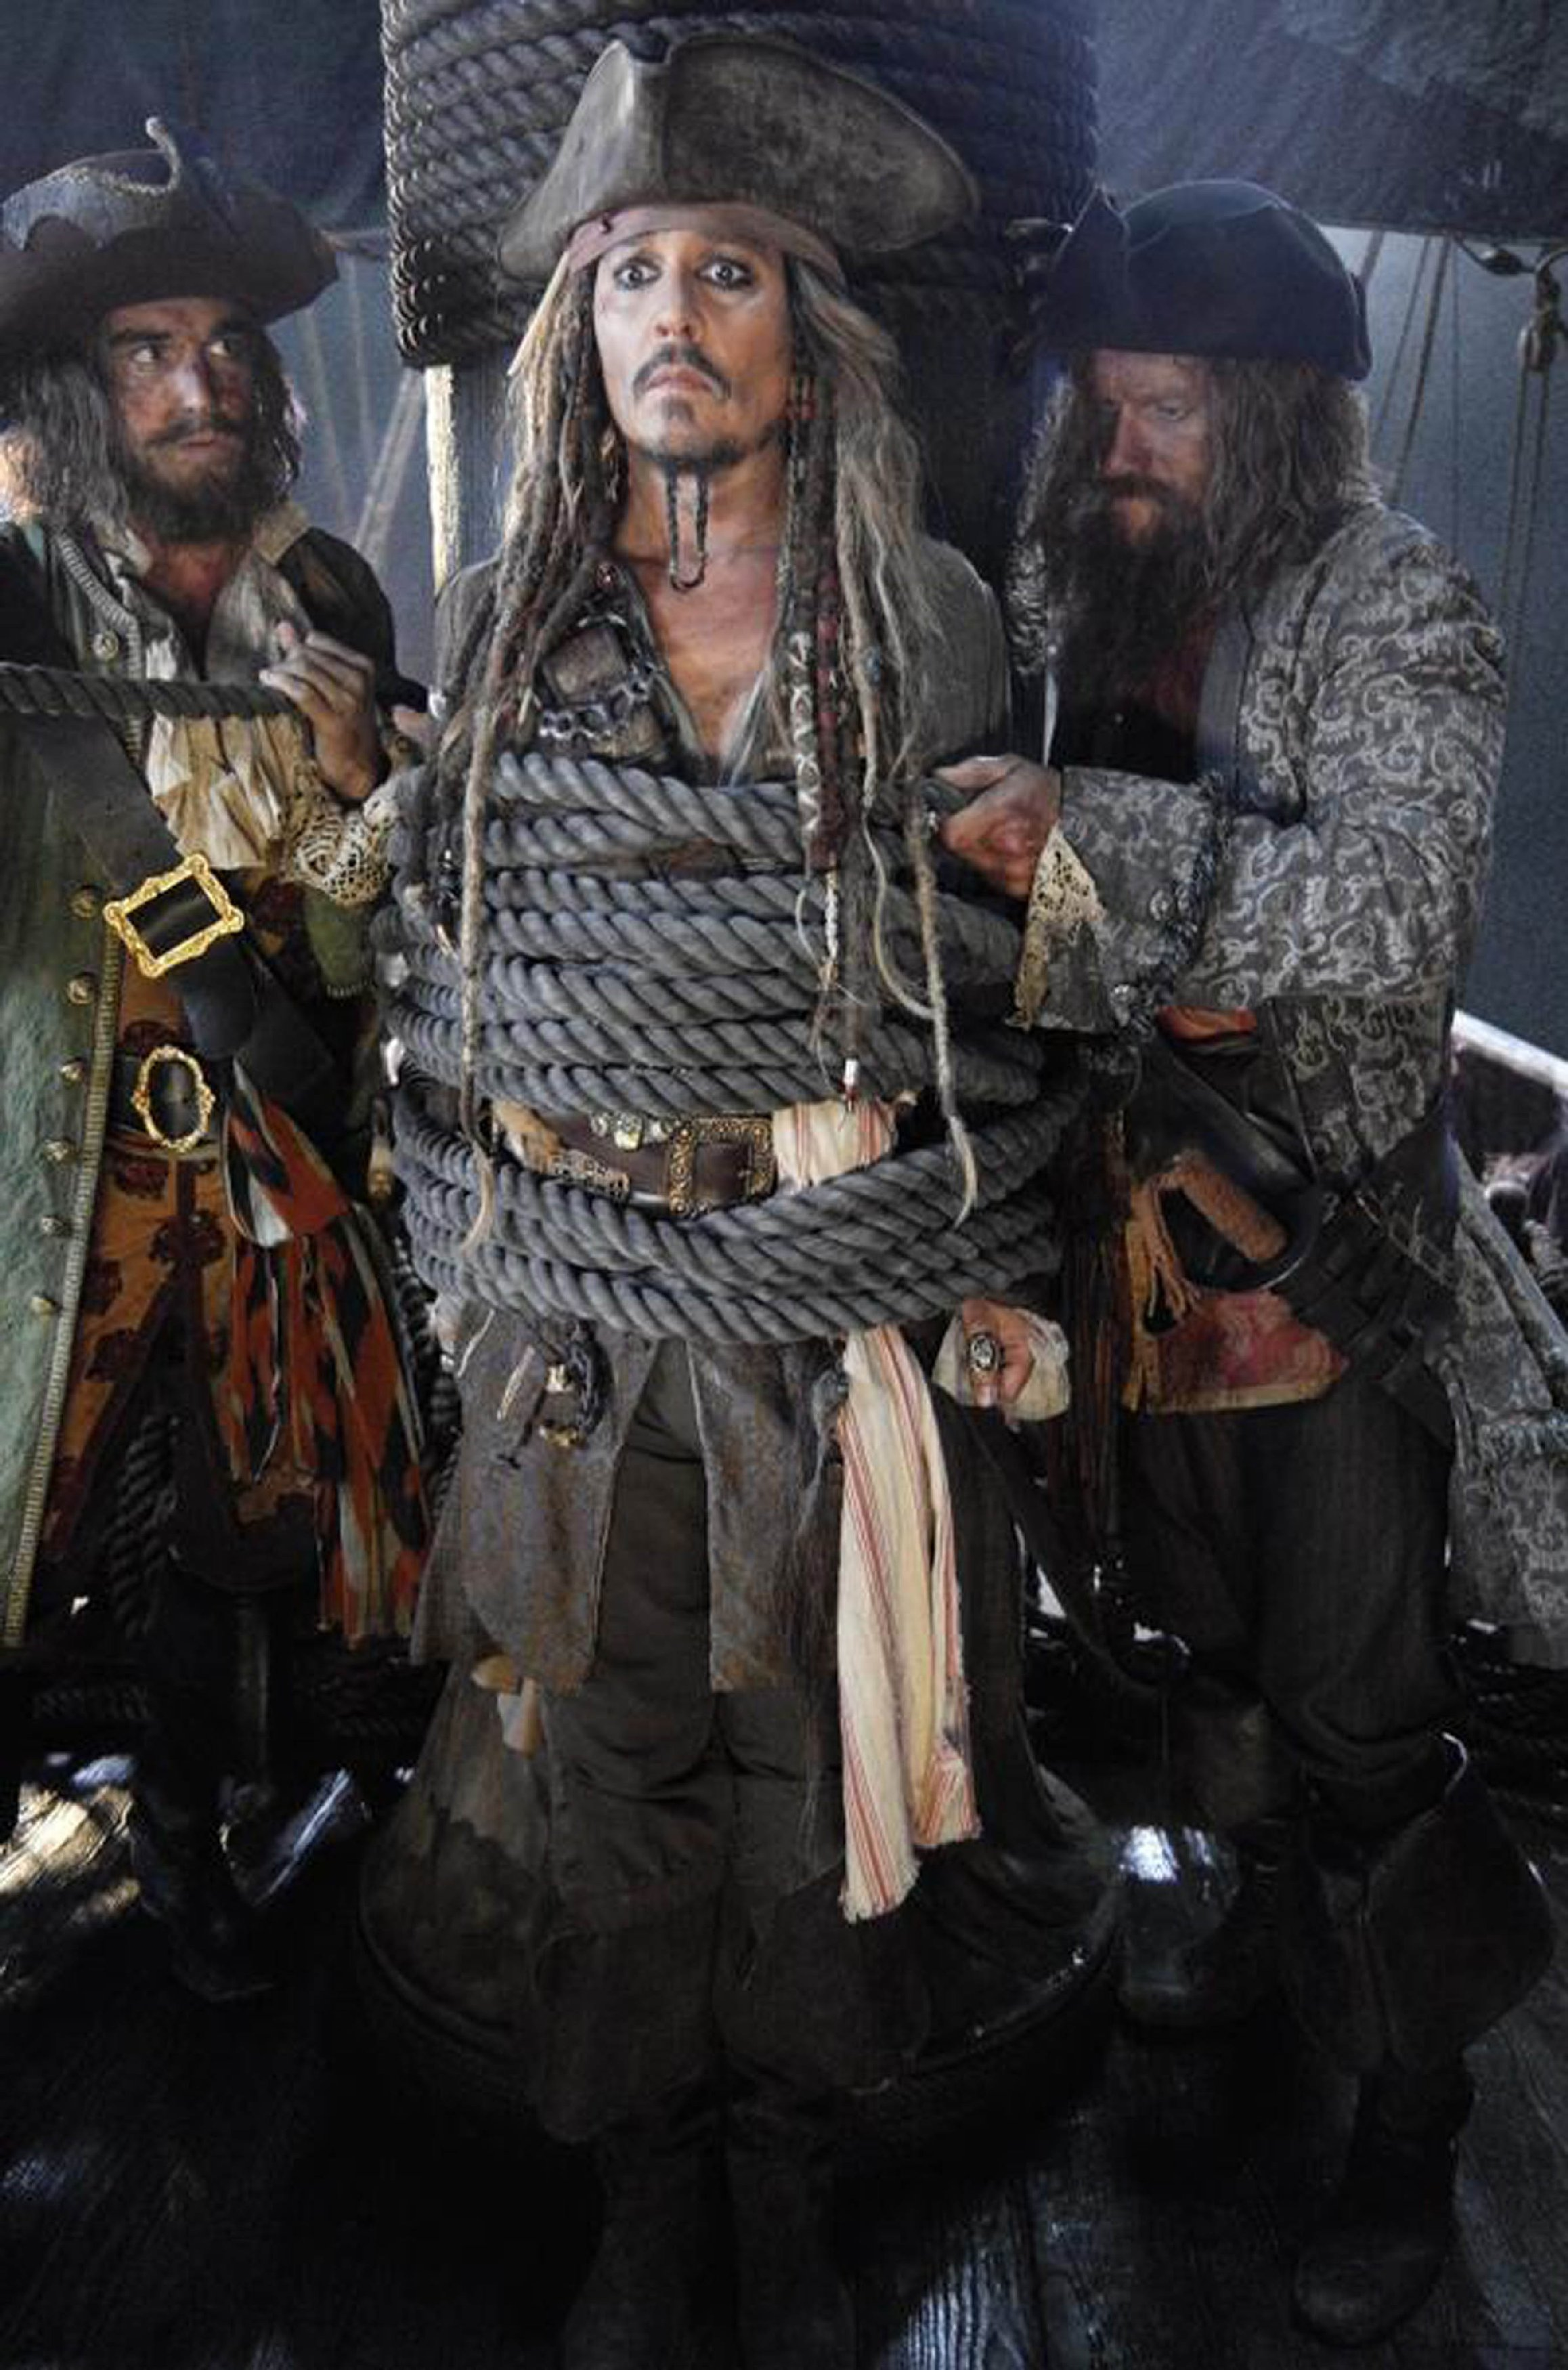 "22-4-2015 ""Pirates of the Caribbean: Dead Men Tell No Tales"" film still Pictured: Johnny Depp PLANET PHOTOS www.planetphotos.co.uk info@planetphotos.co.uk +44 (0)20 8883 1438"